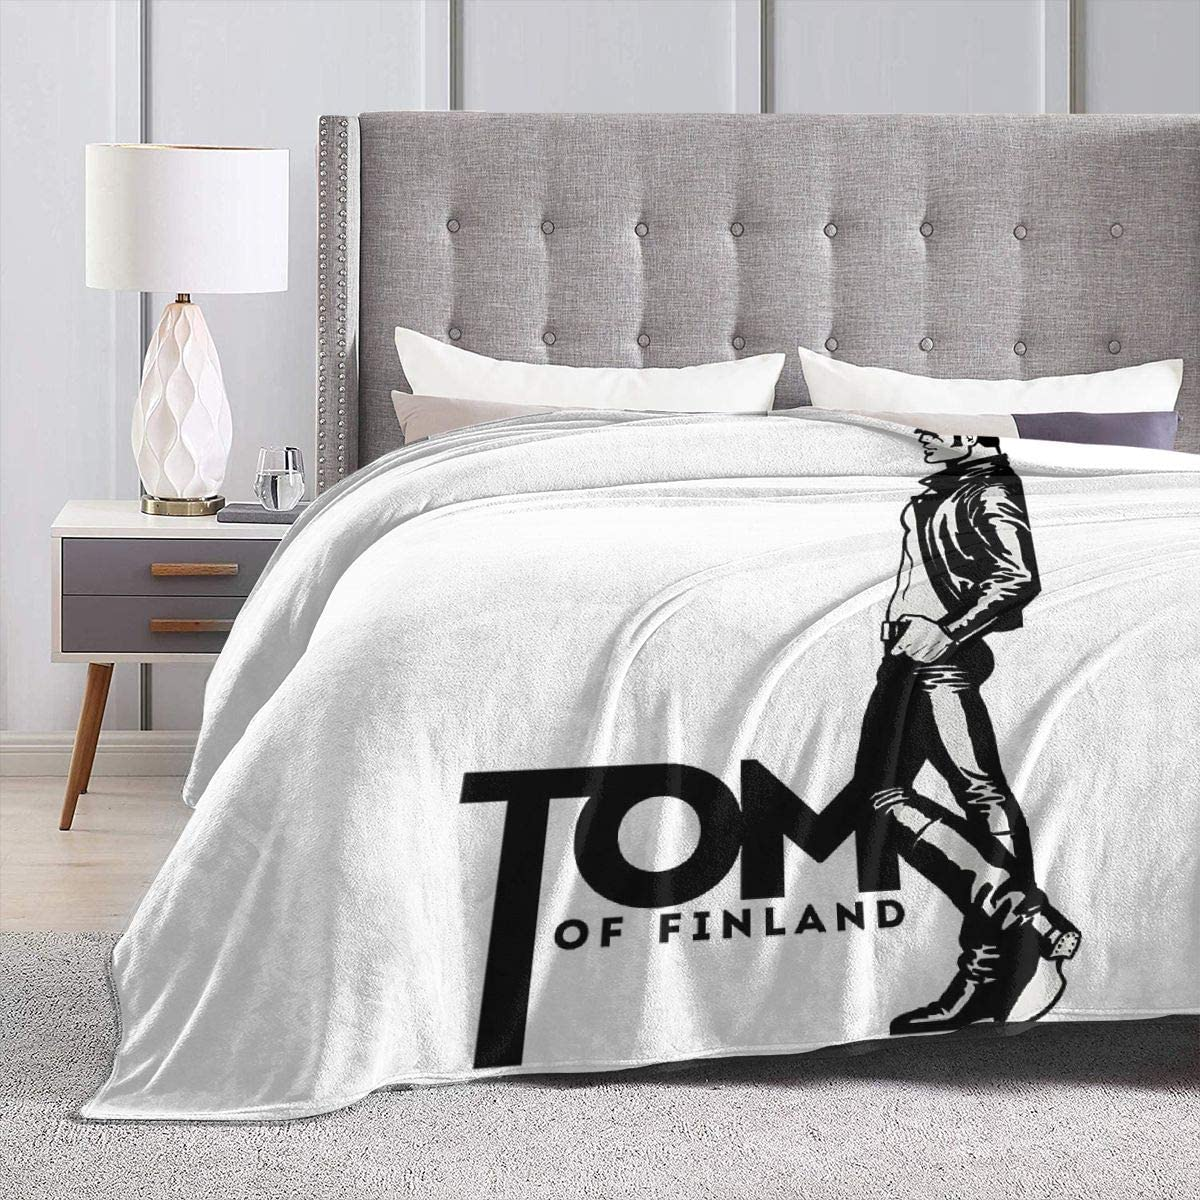 Gifetee Tom of Finland Ultra Soft Micro Fleece Blanket Couch 50 x40